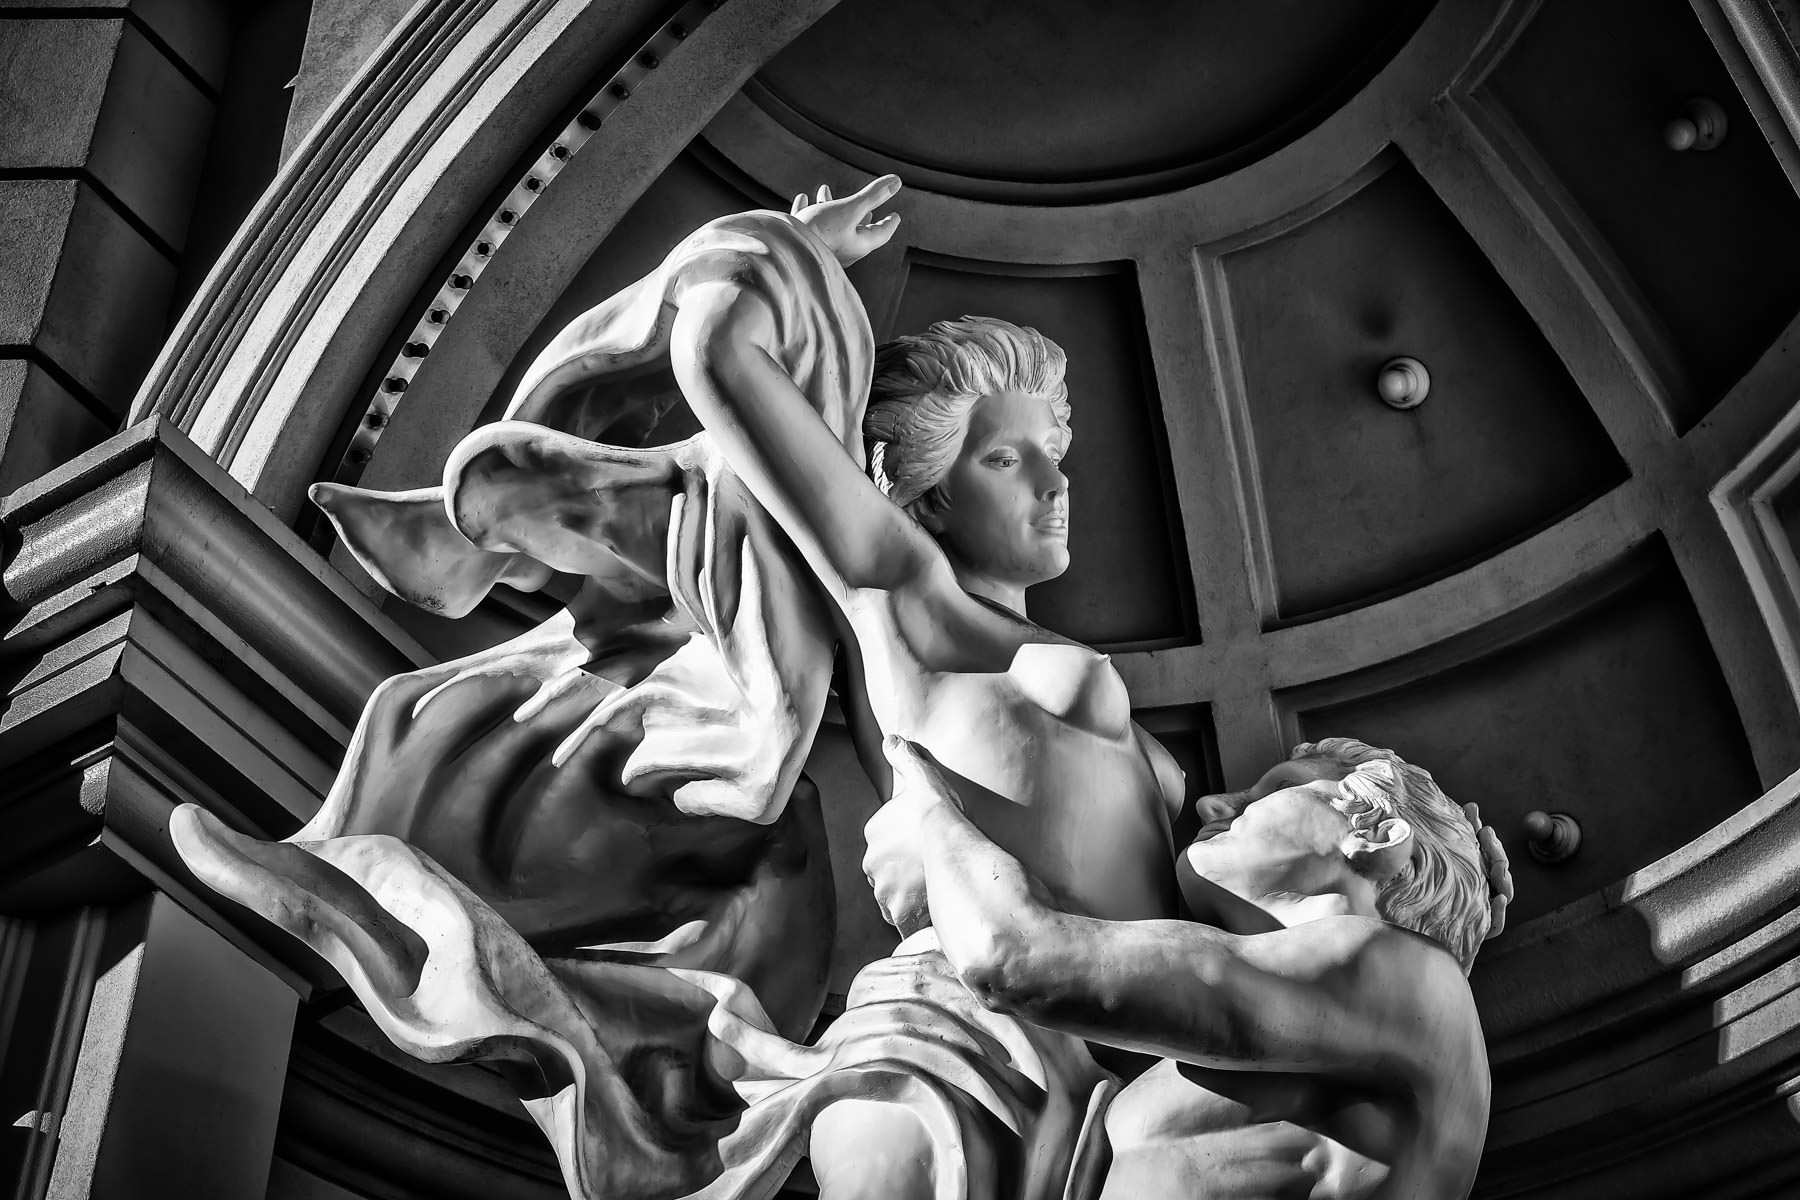 A statue depicting The Rape of the Sabine Women at Monte Carlo Casino and Hotel, Las Vegas.